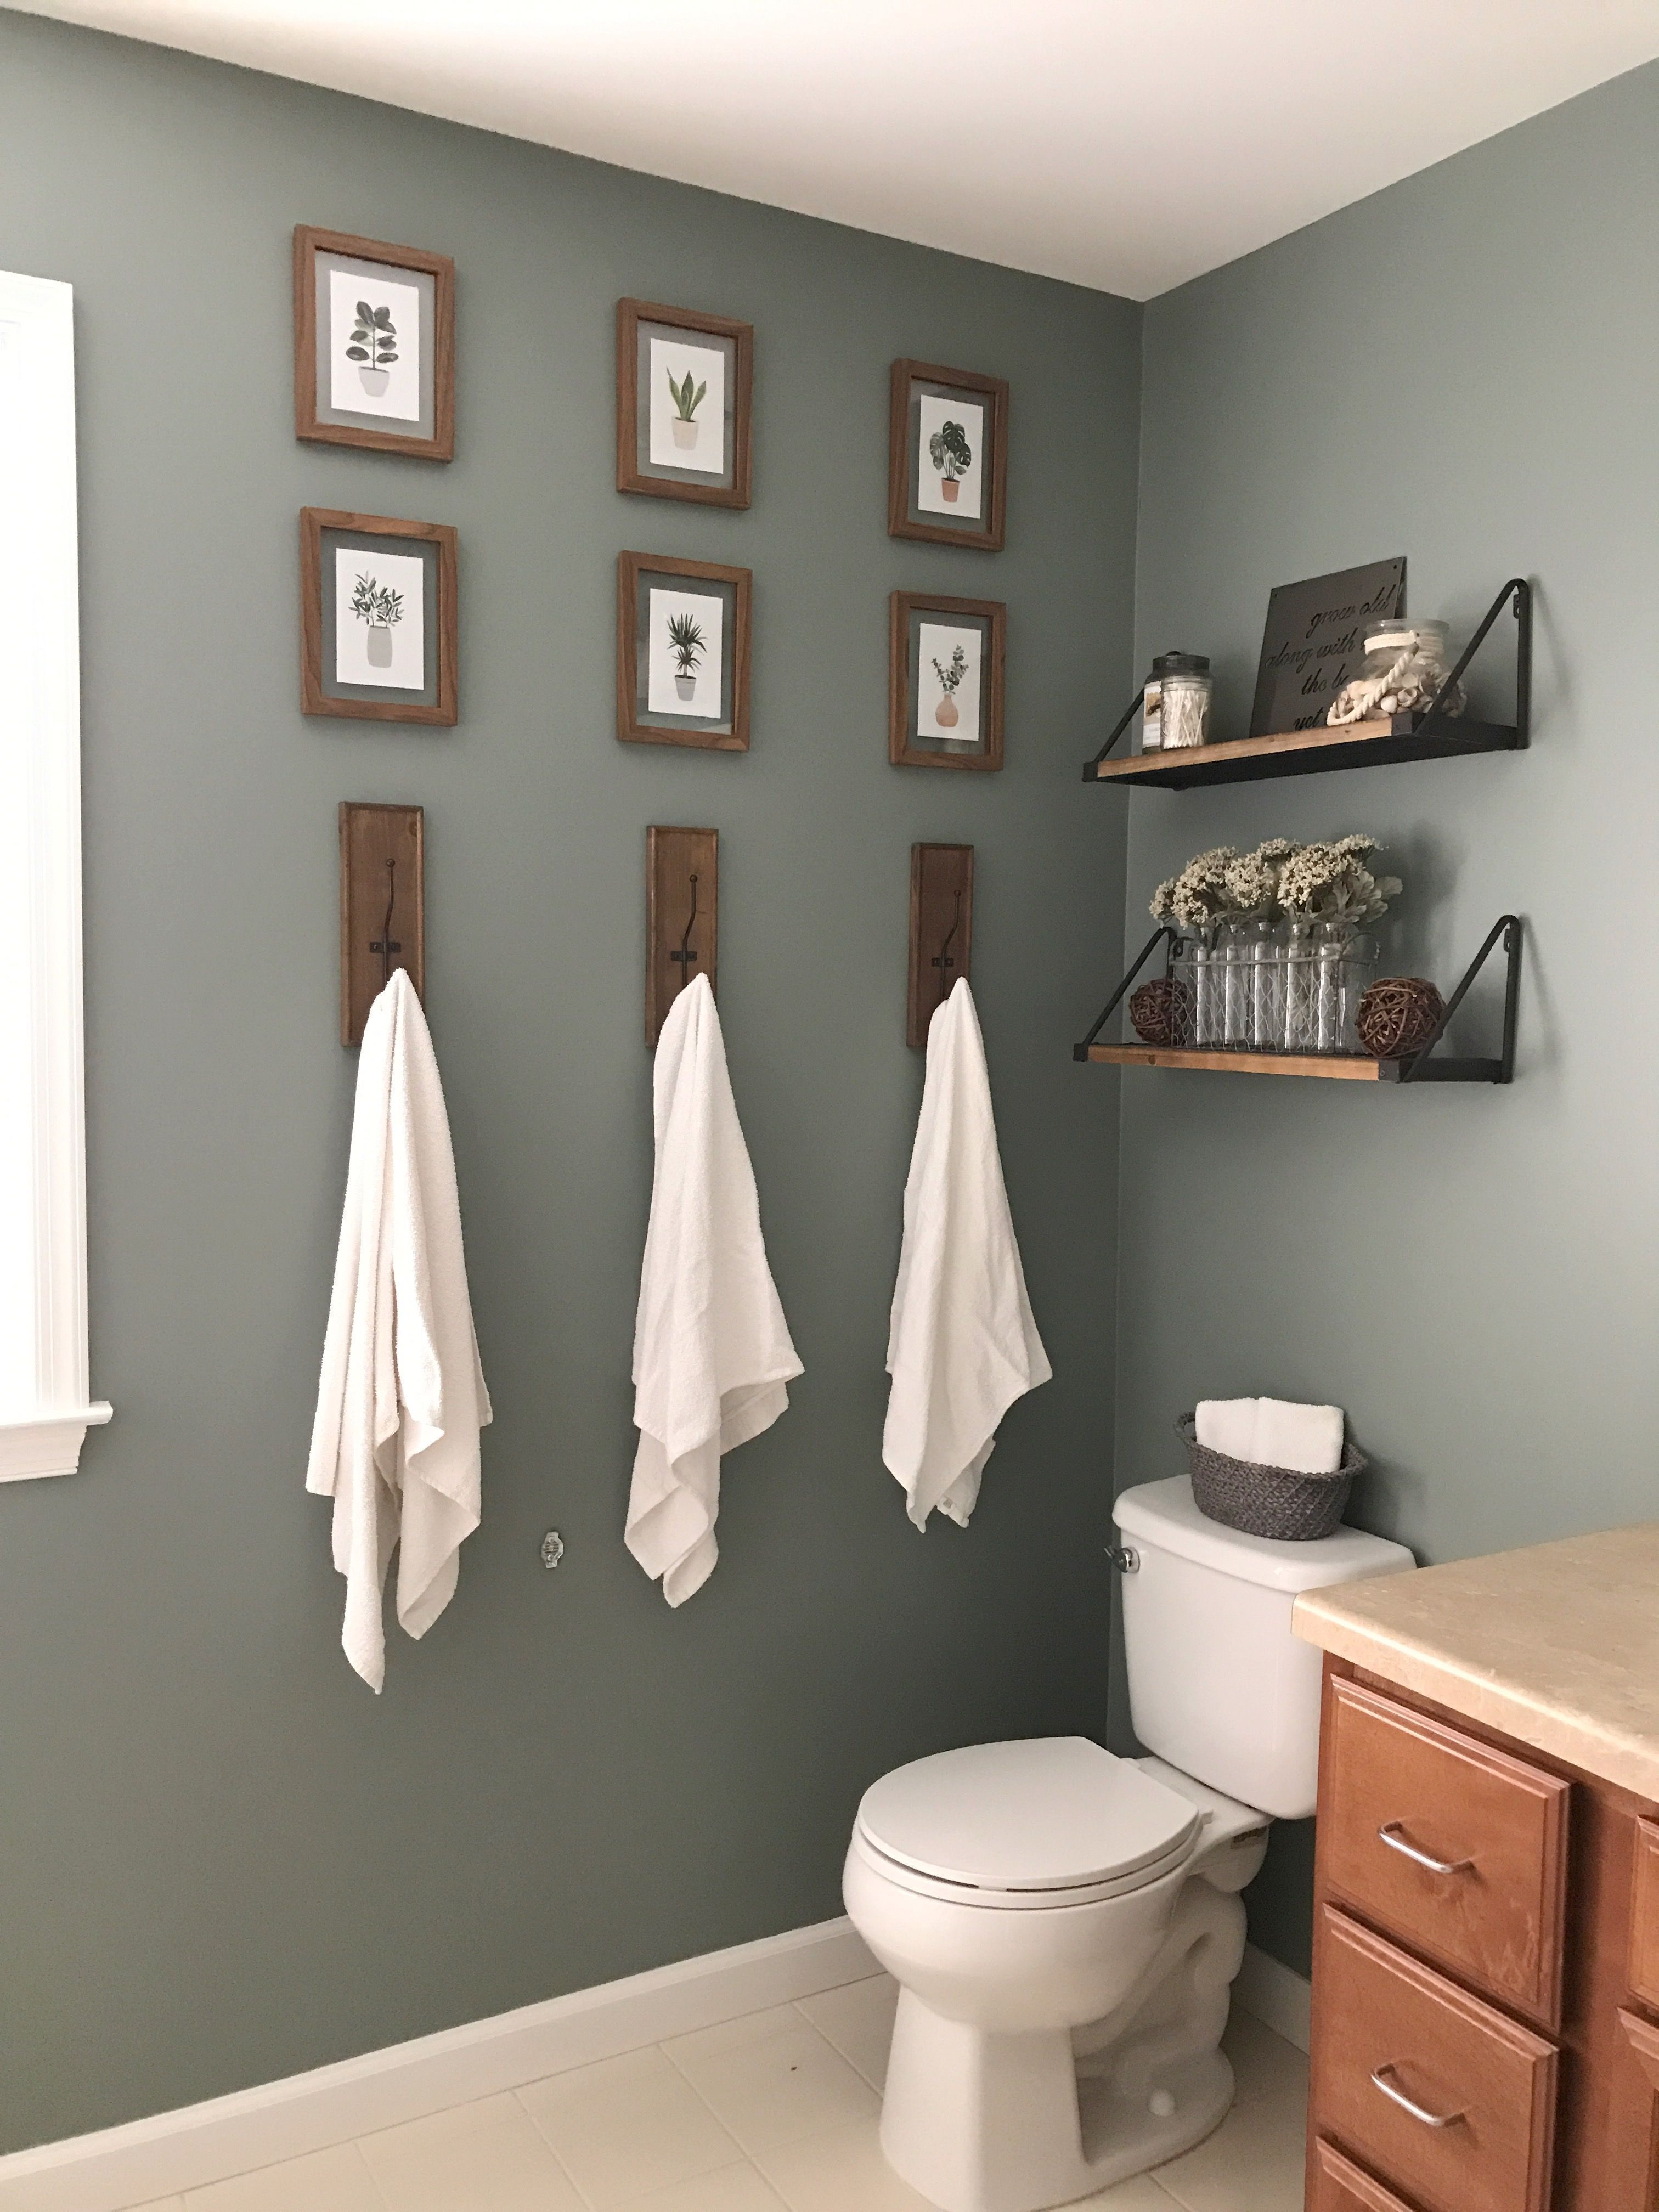 most popular small bathroom remodel ideas on a budget in on most popular interior paint colors id=84645